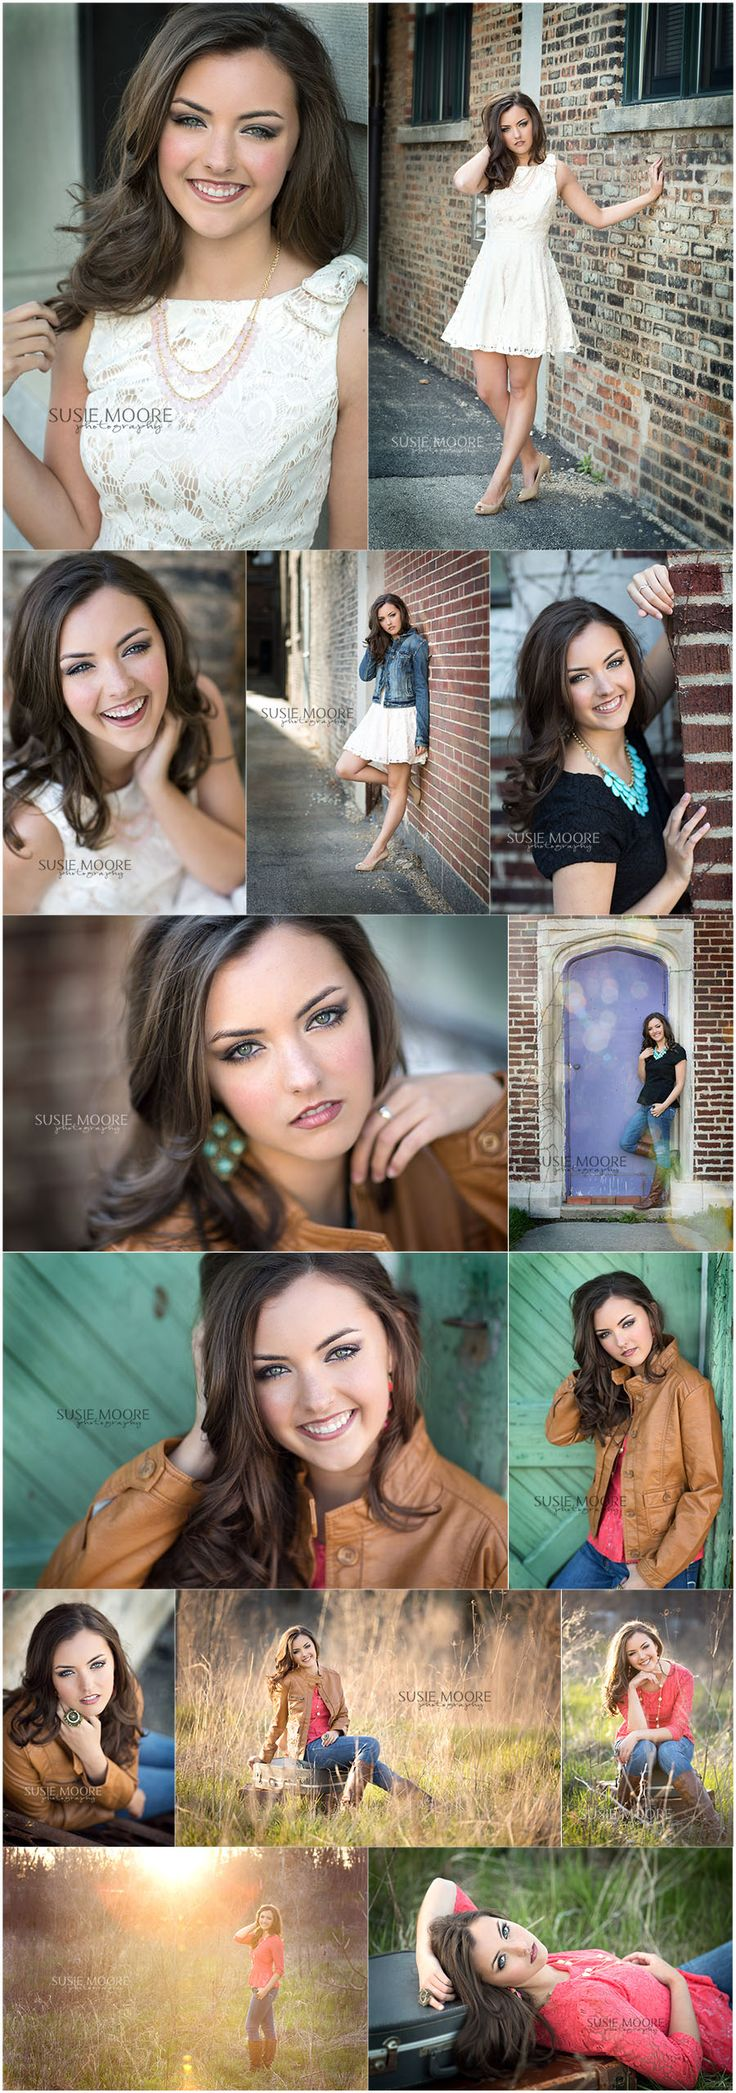 Rachel | Hinsdale Central High School | Class of 2013